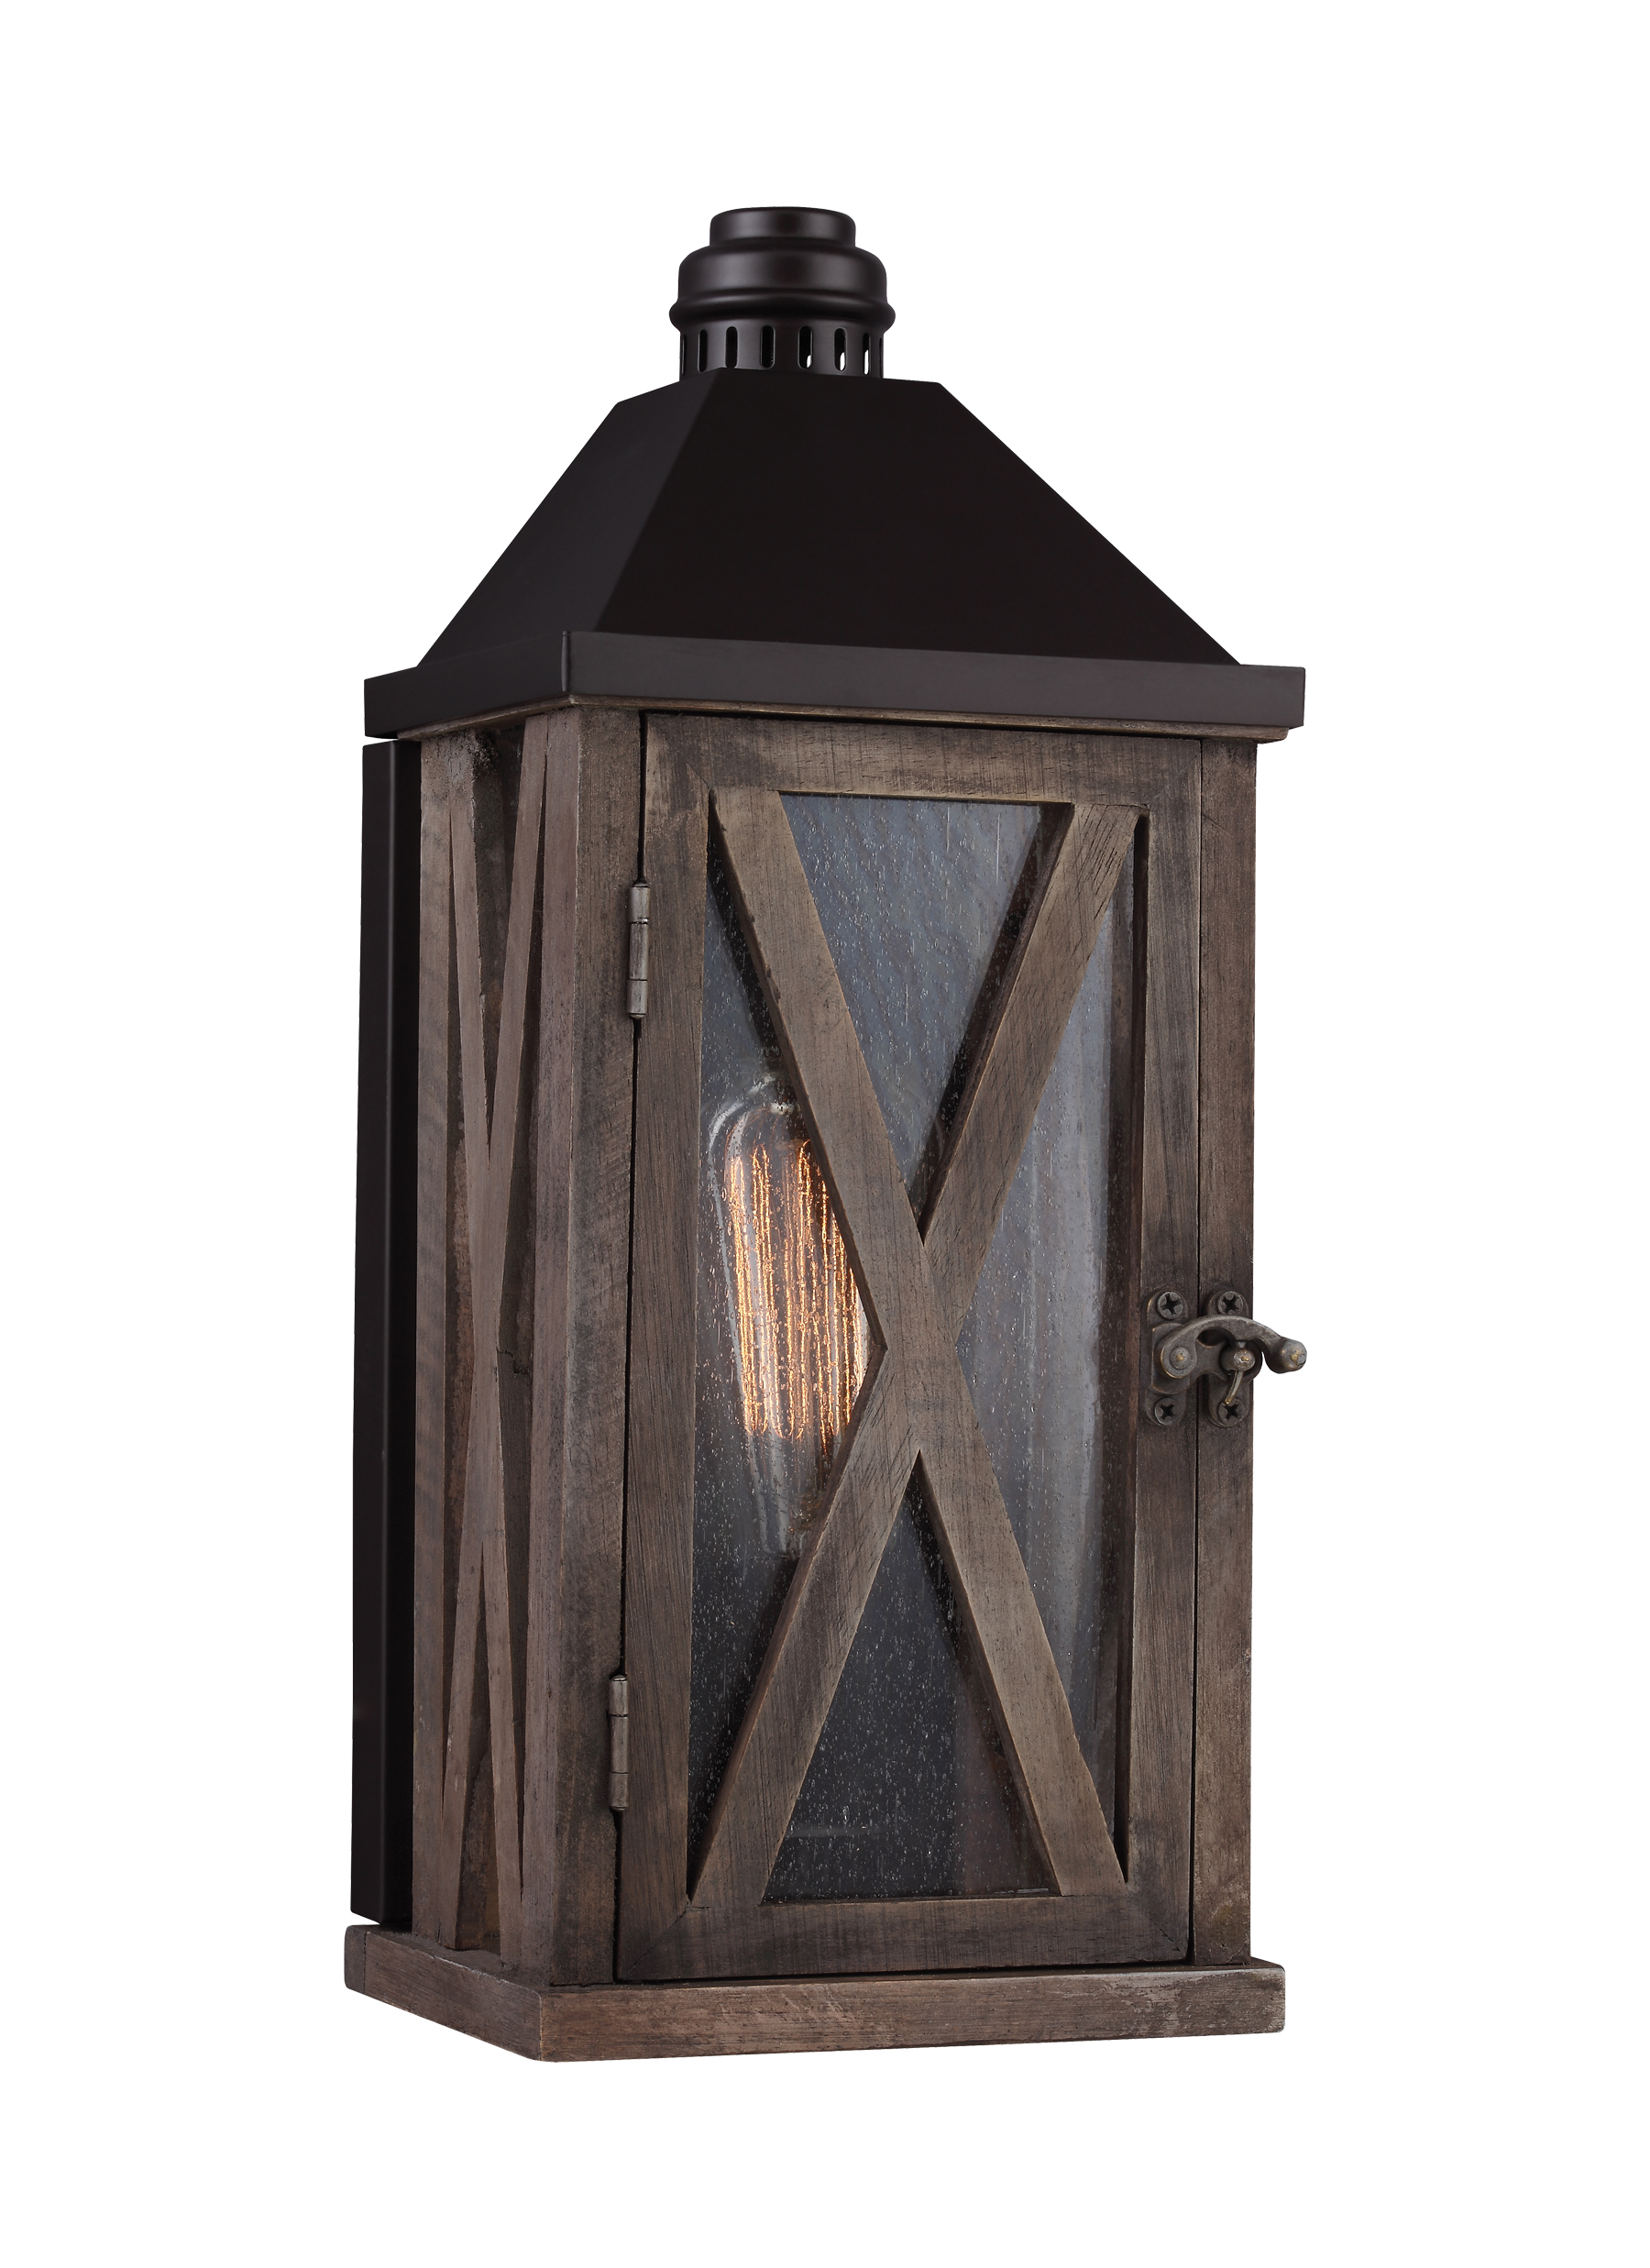 Ol17000dwoorb1 light outdoor wall sconcedark weathered oak loading zoom aloadofball Image collections